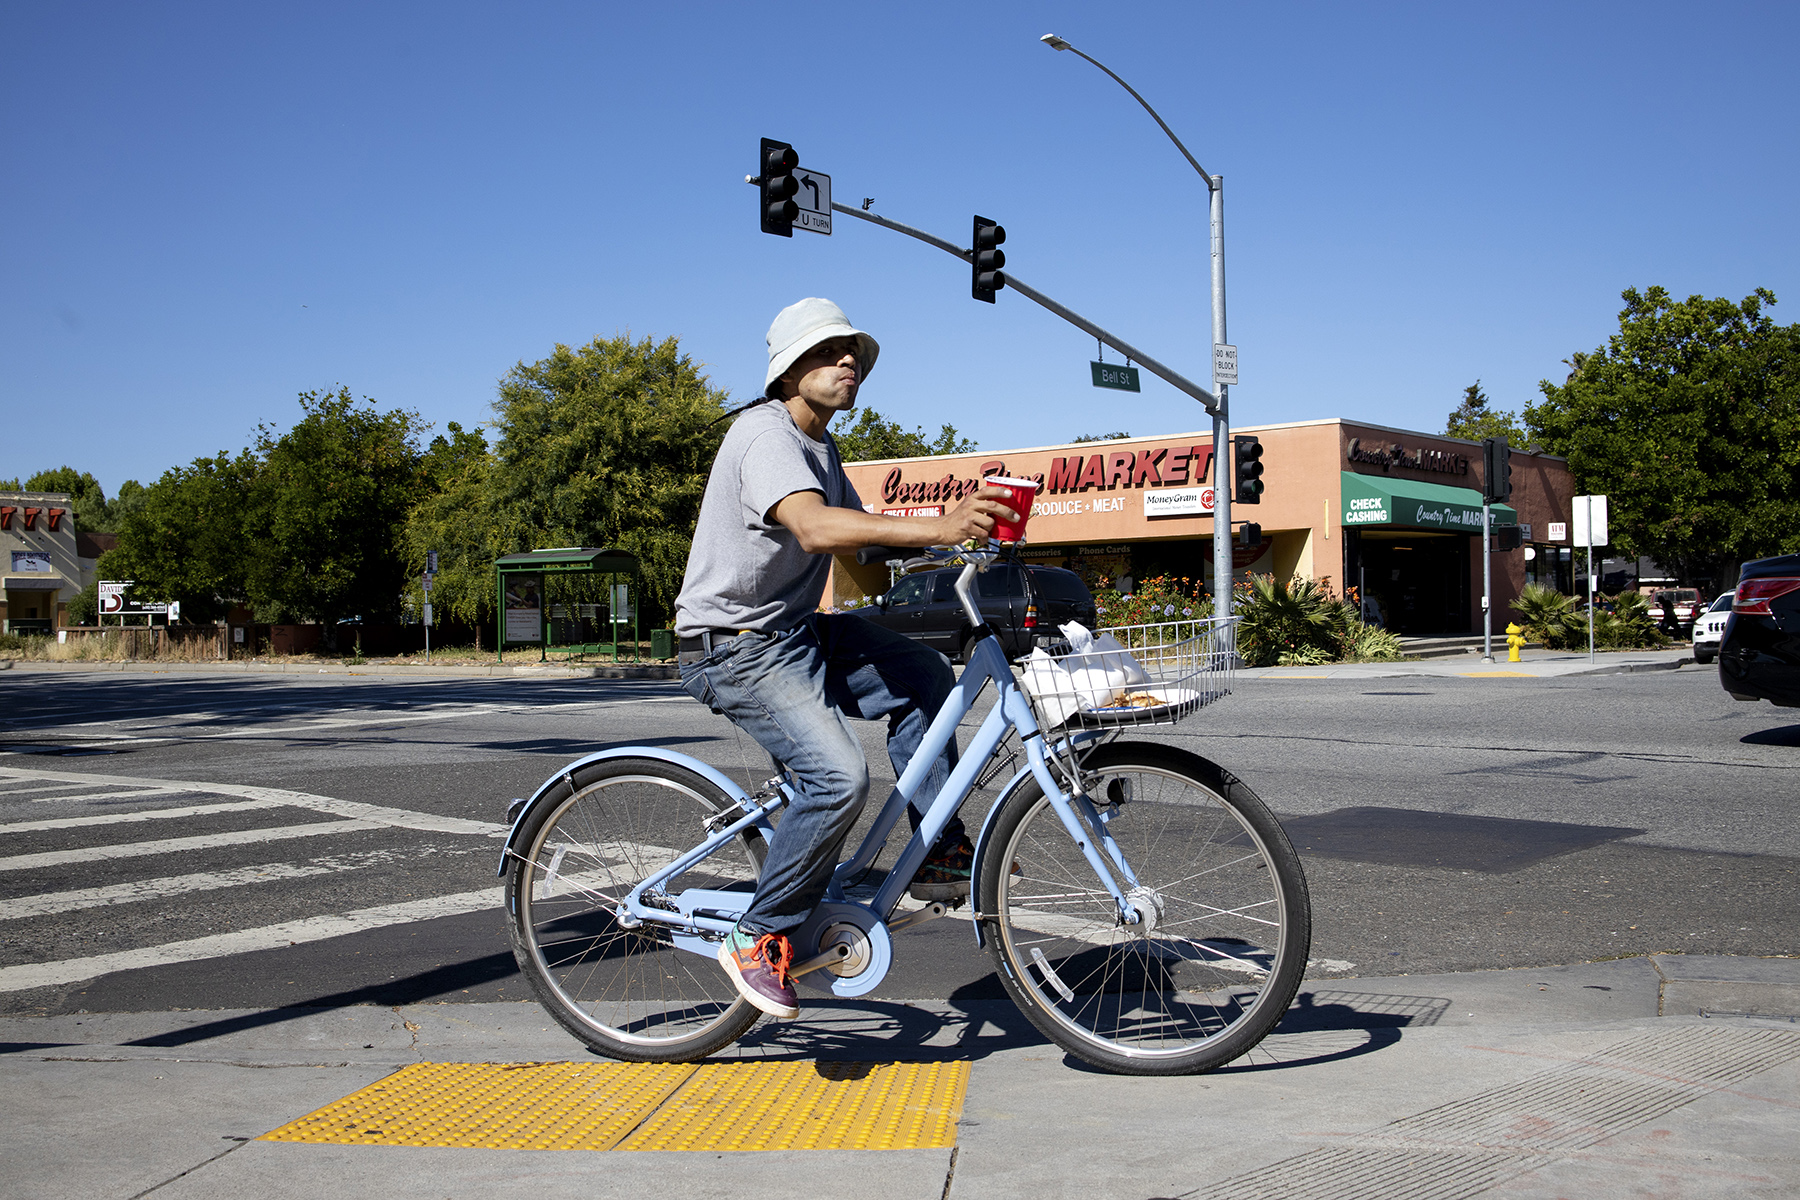 A man rides a Facebook bike along University Avenue in East Palo Alto, Calif., on June 23, 2019. The company bikes are used by Facebook employees to get around the campus, but employees often leave them around and they end up elsewhere. Outcry after police in the neighboring city of Menlo Park, where Facebook is located, stopped and interrogated people riding the bikes who they thought were not Facebook employees, led to the company issuing a statement that they didn't want anyone with the bikes stopped by police.